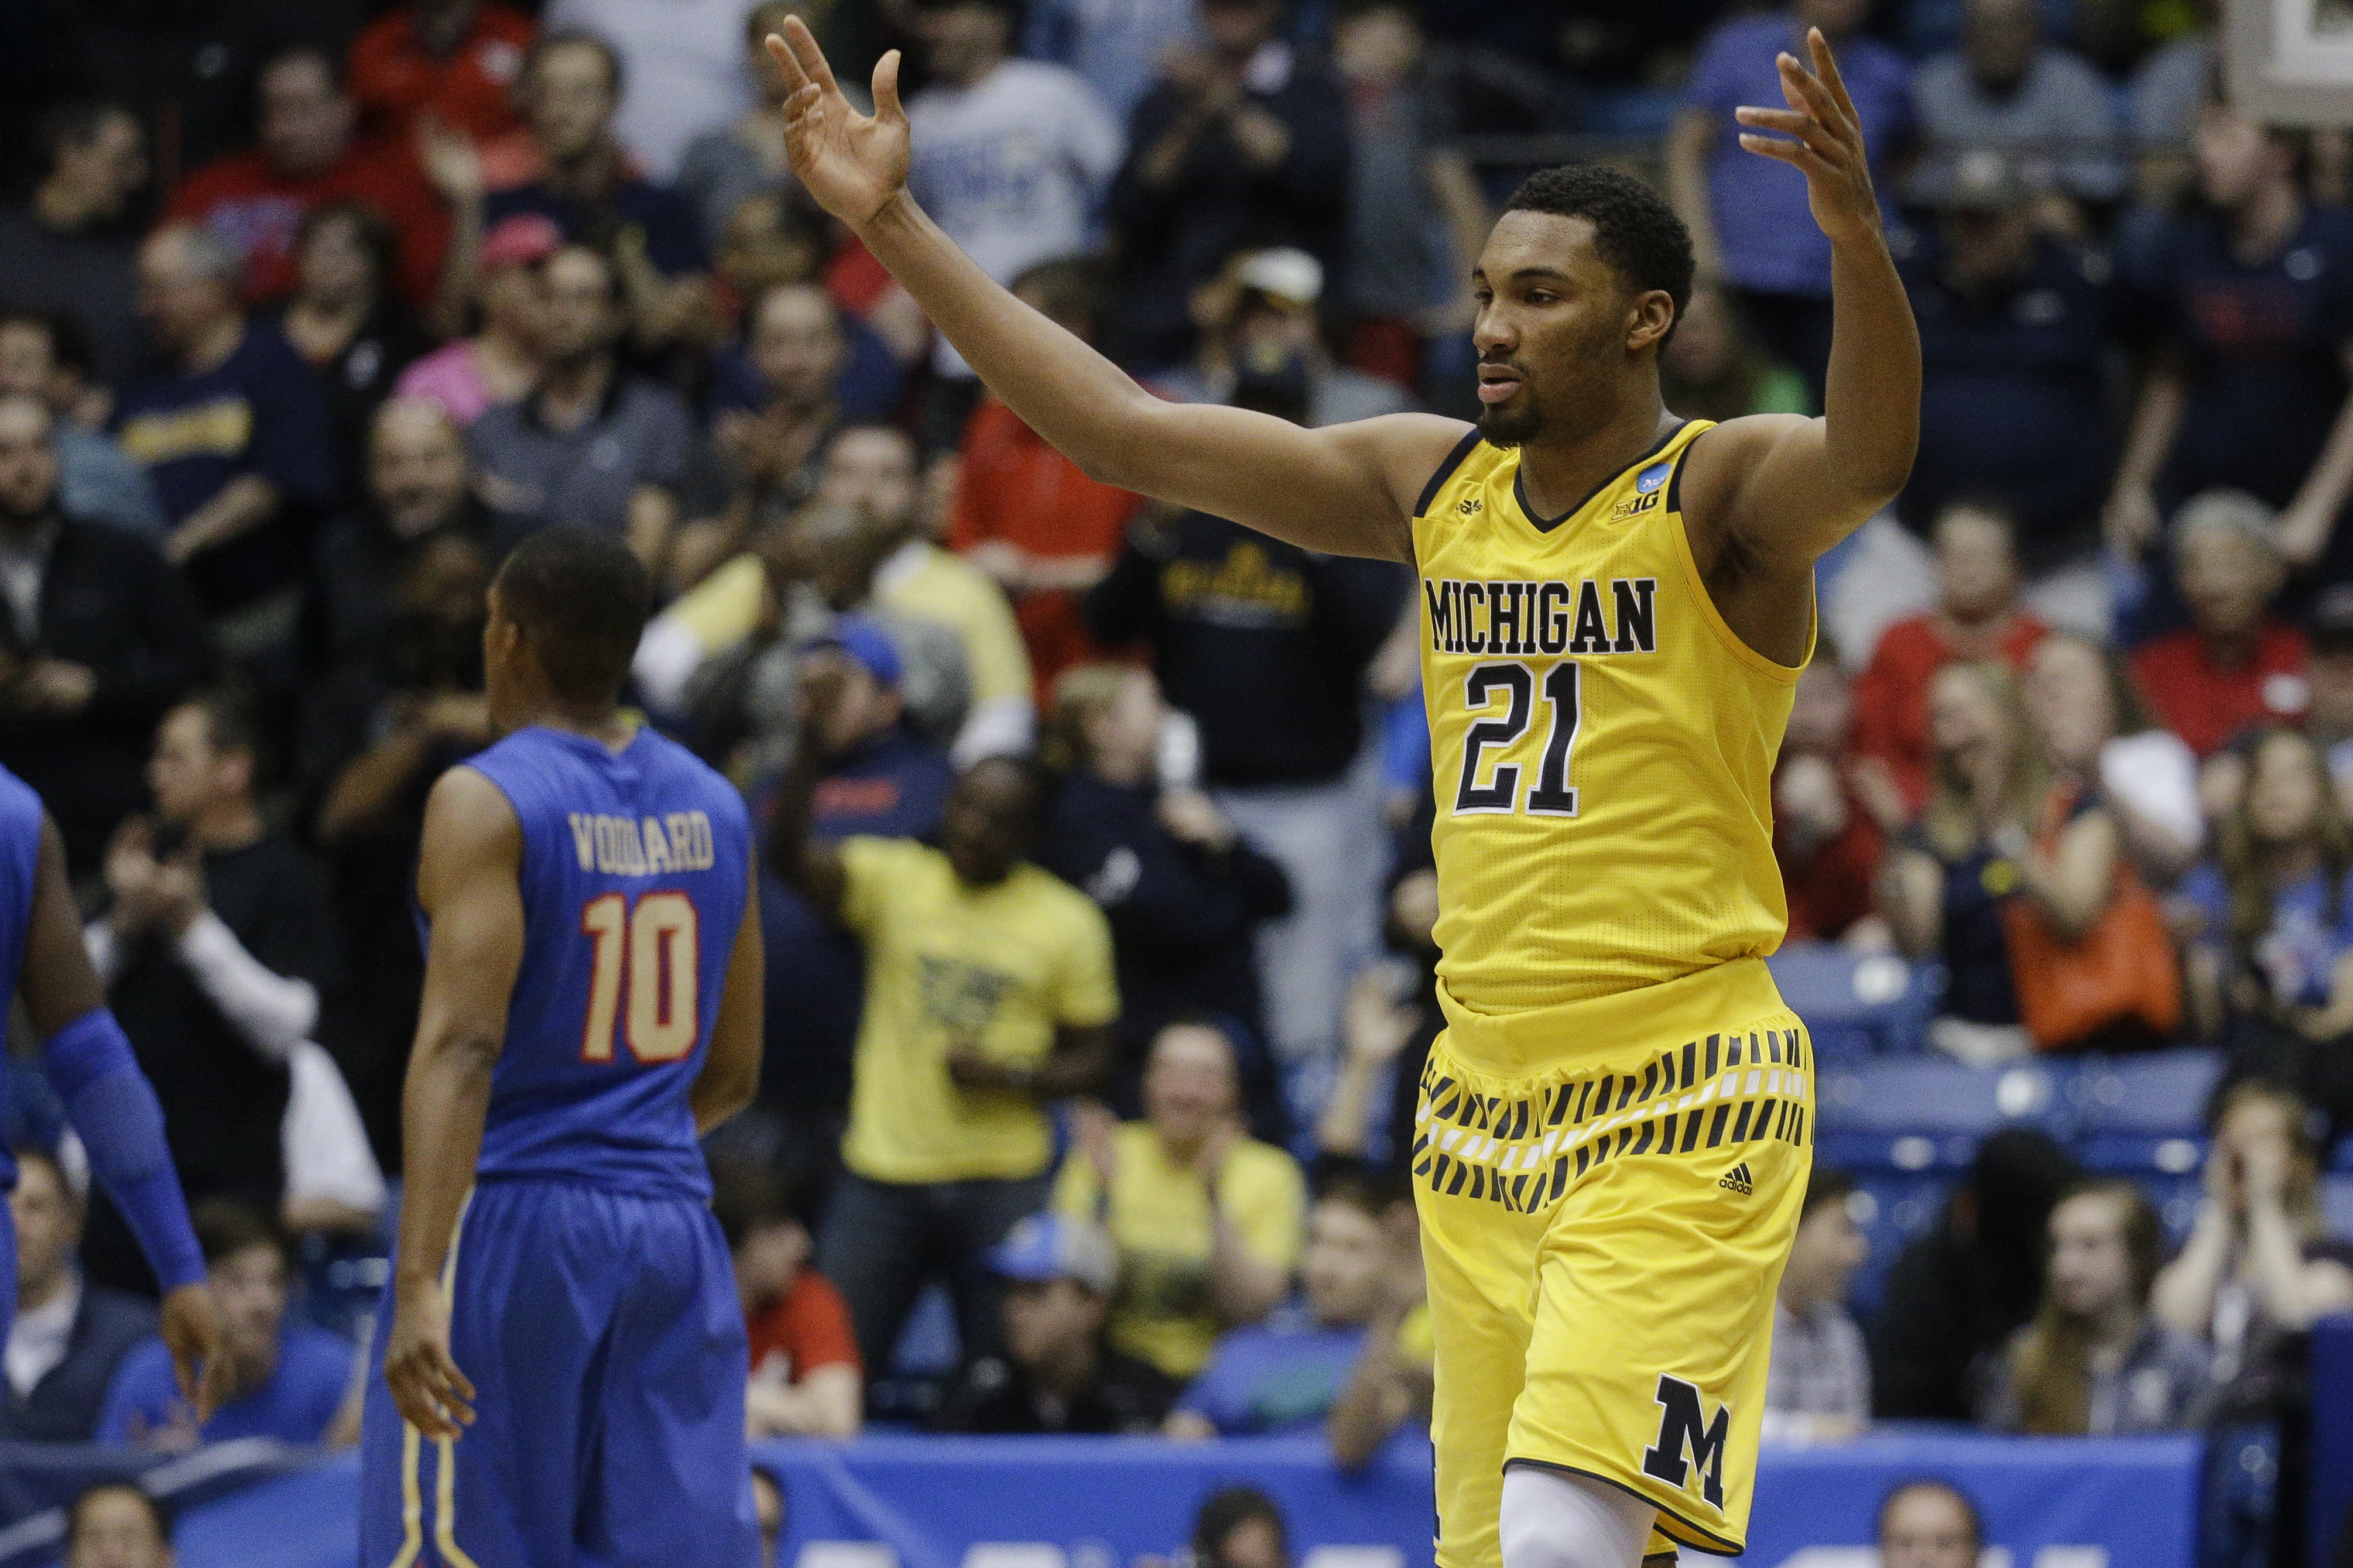 Michigan's Zak Irvin (21) celebrates during the second half of a First Four game of the NCAA college basketball tournament against Tulsa, Wednesday, March 16, 2016, in Dayton, Ohio. Michigan won 67-62. (AP Photo/John Minchillo)